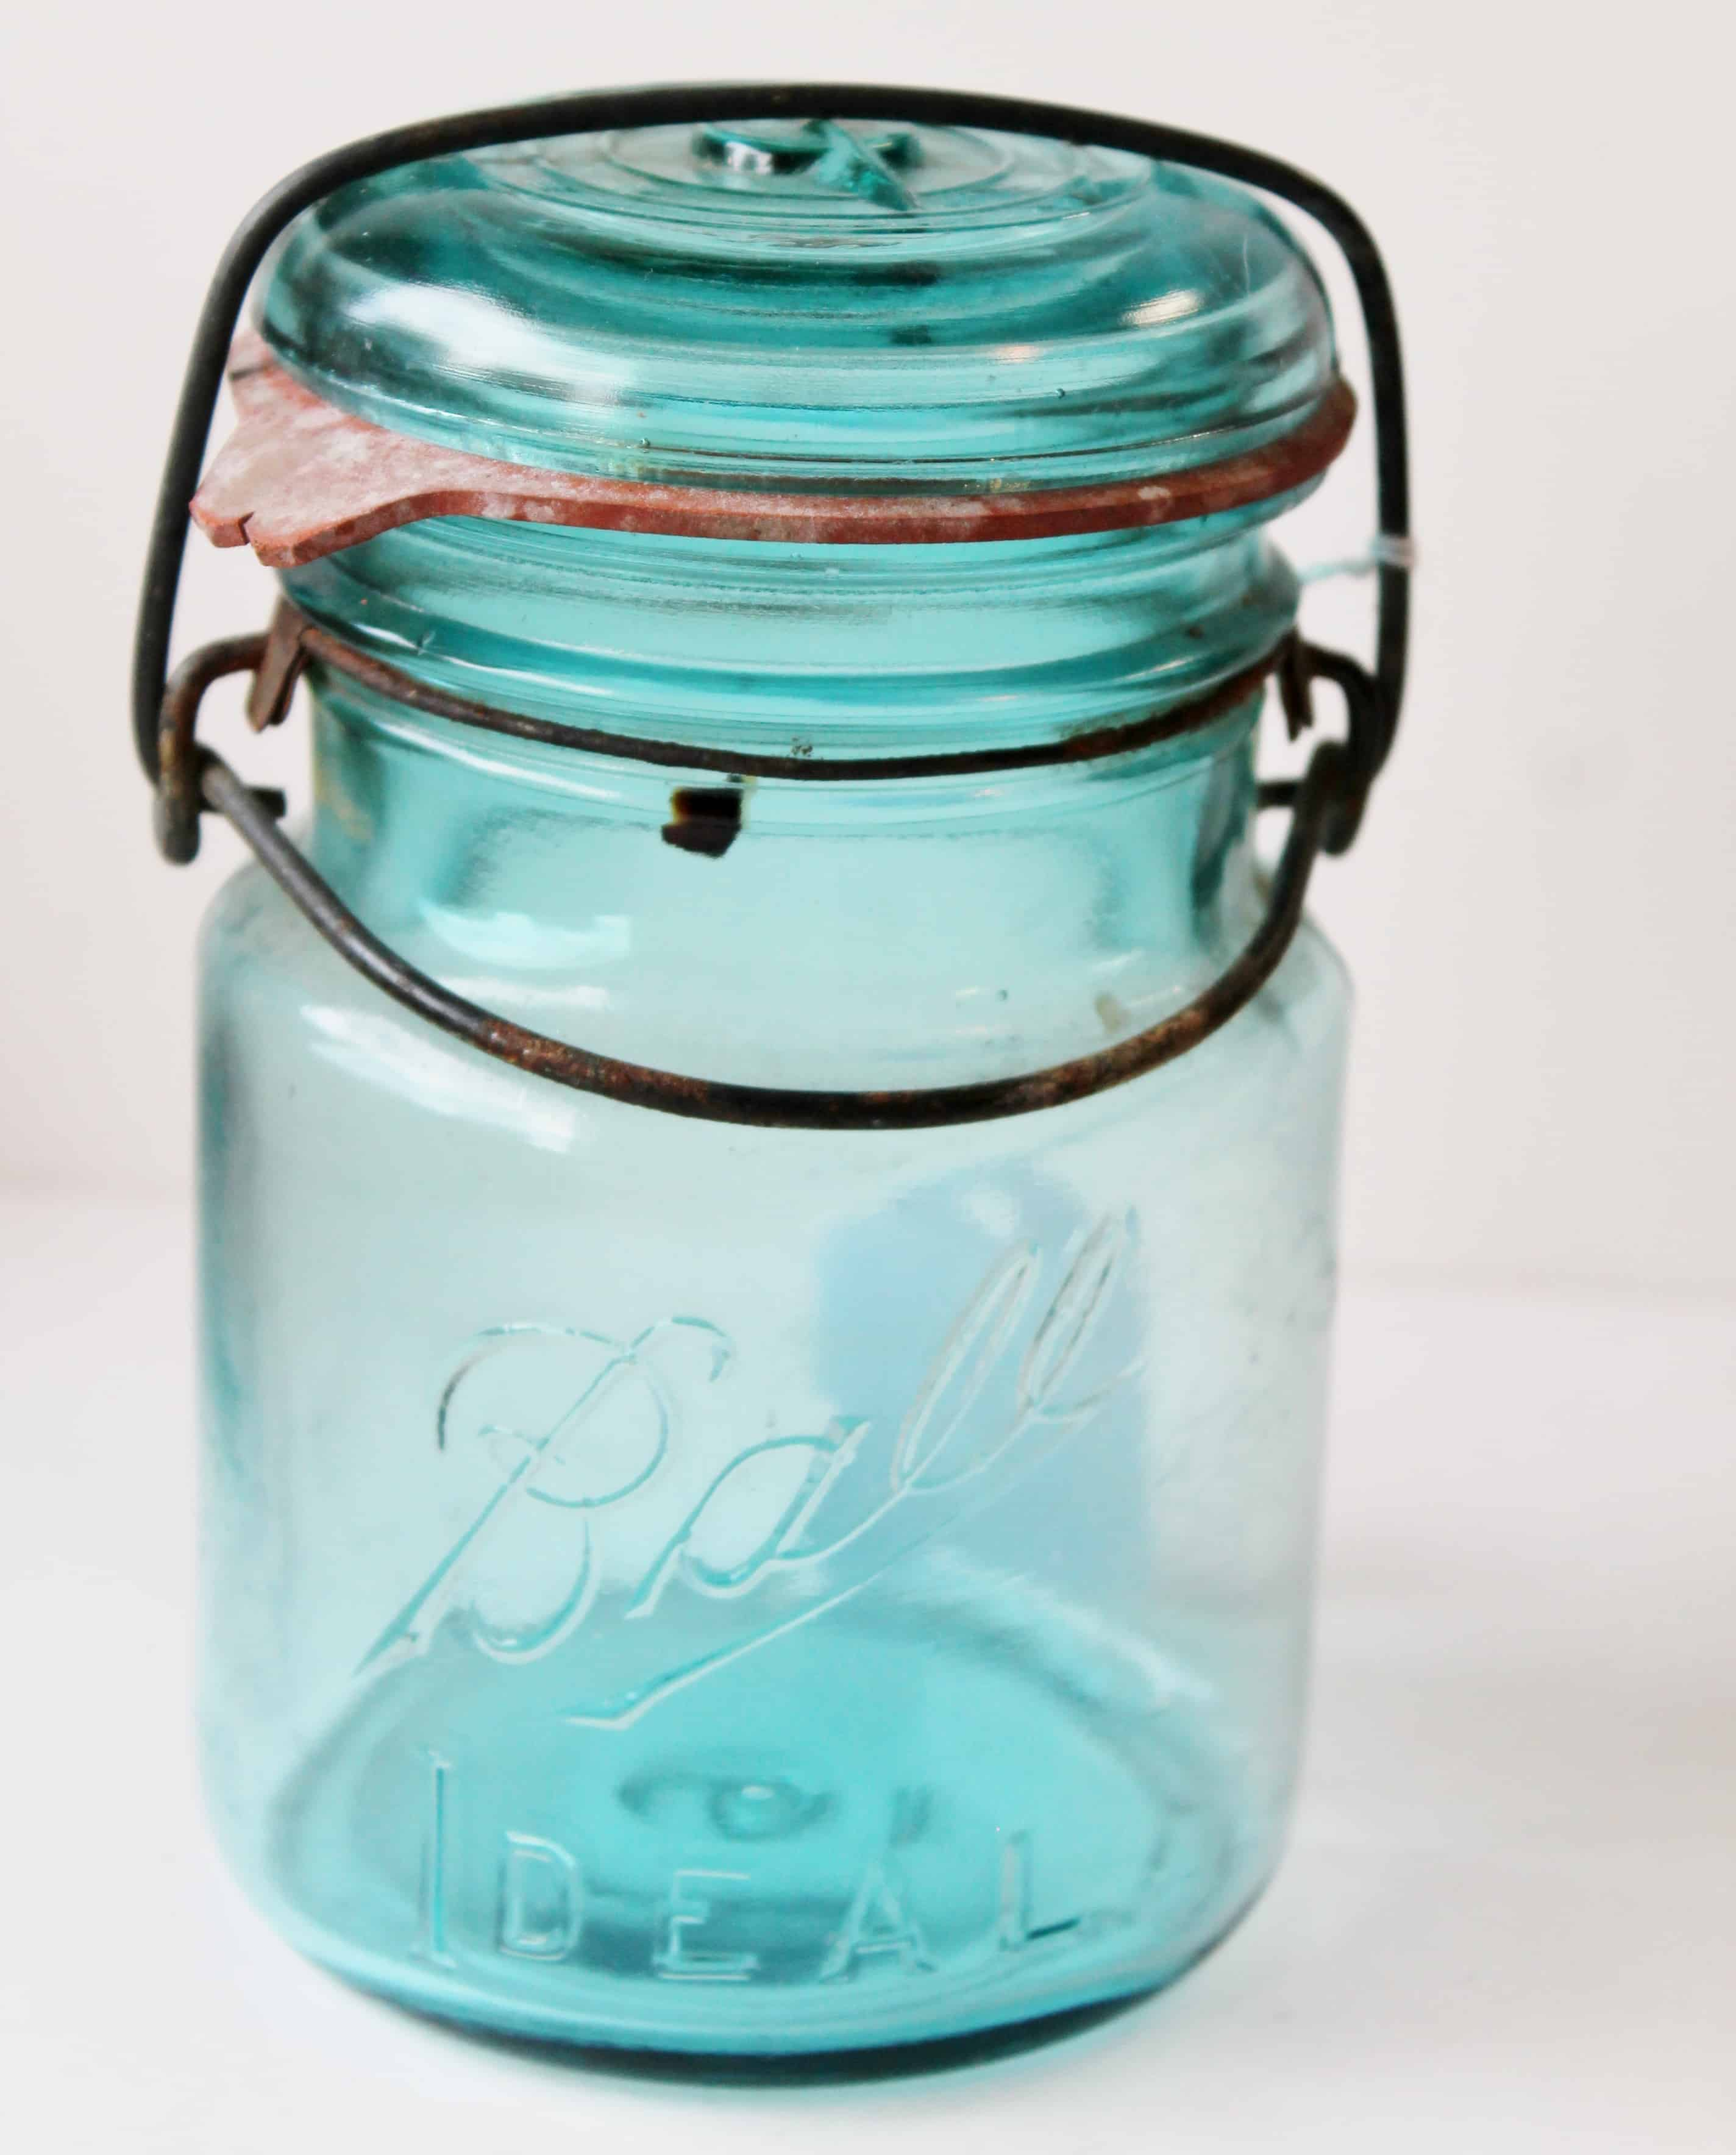 aqua ball canning jar pint size with metal closure